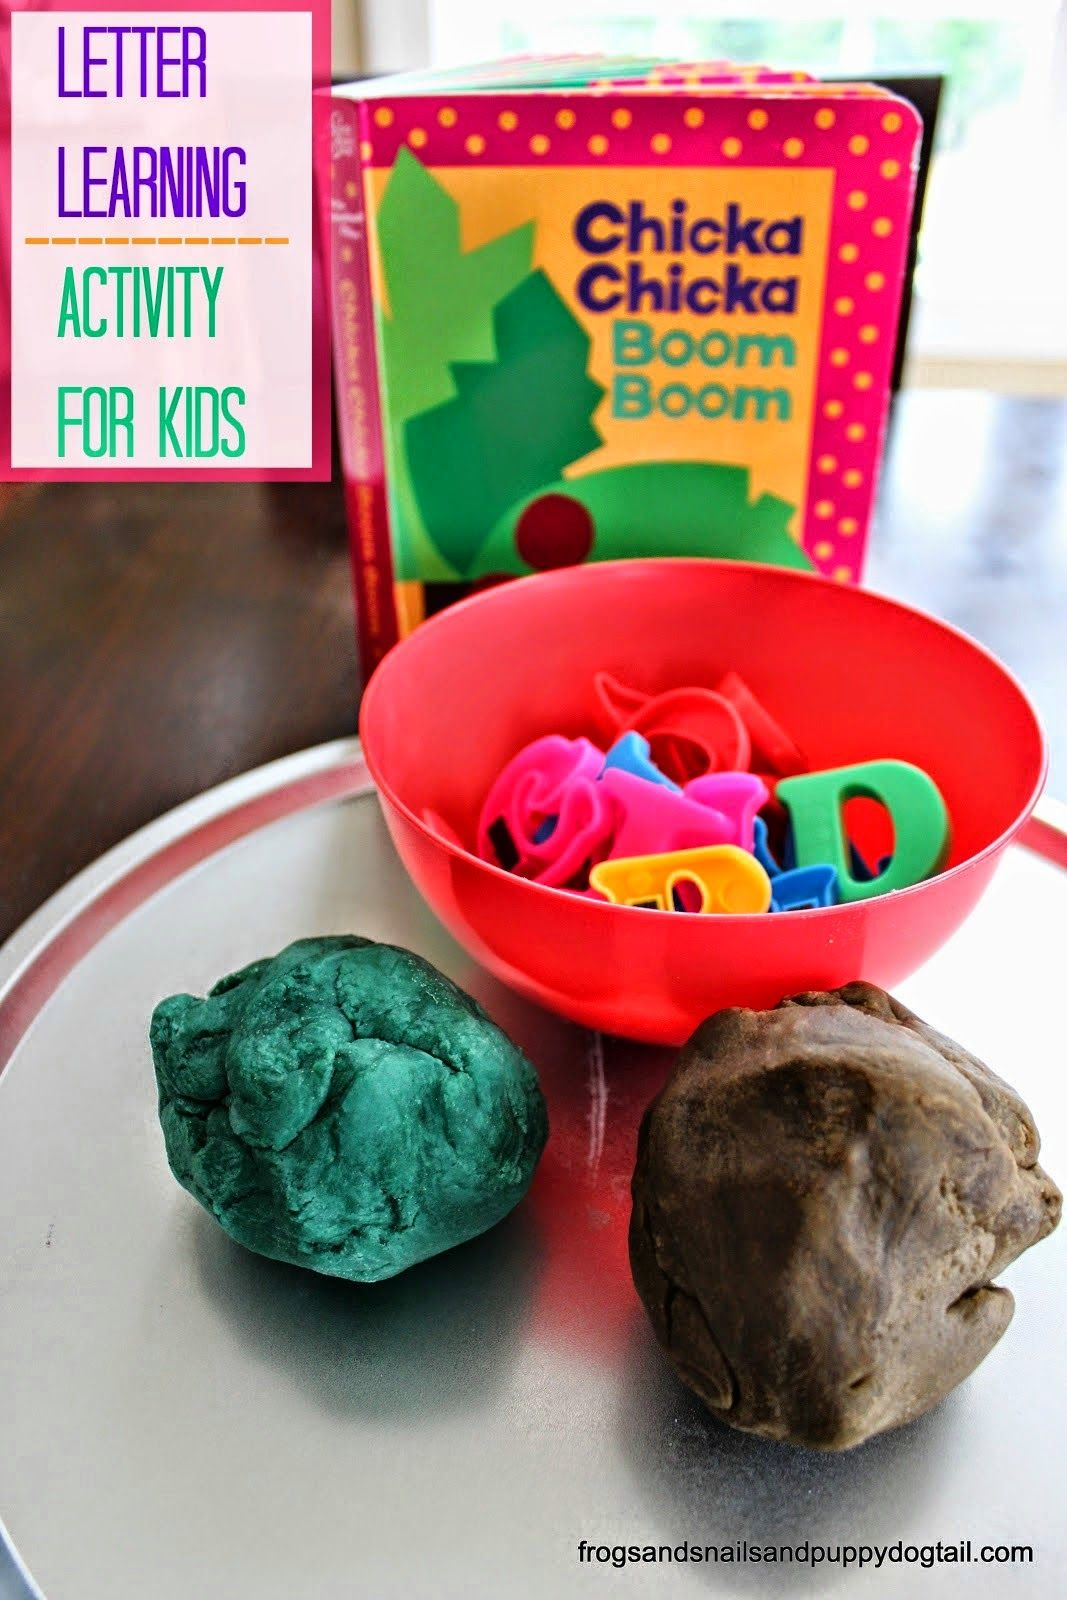 Chicka Chicka Boom Boom Letter Learning Activity For Kids